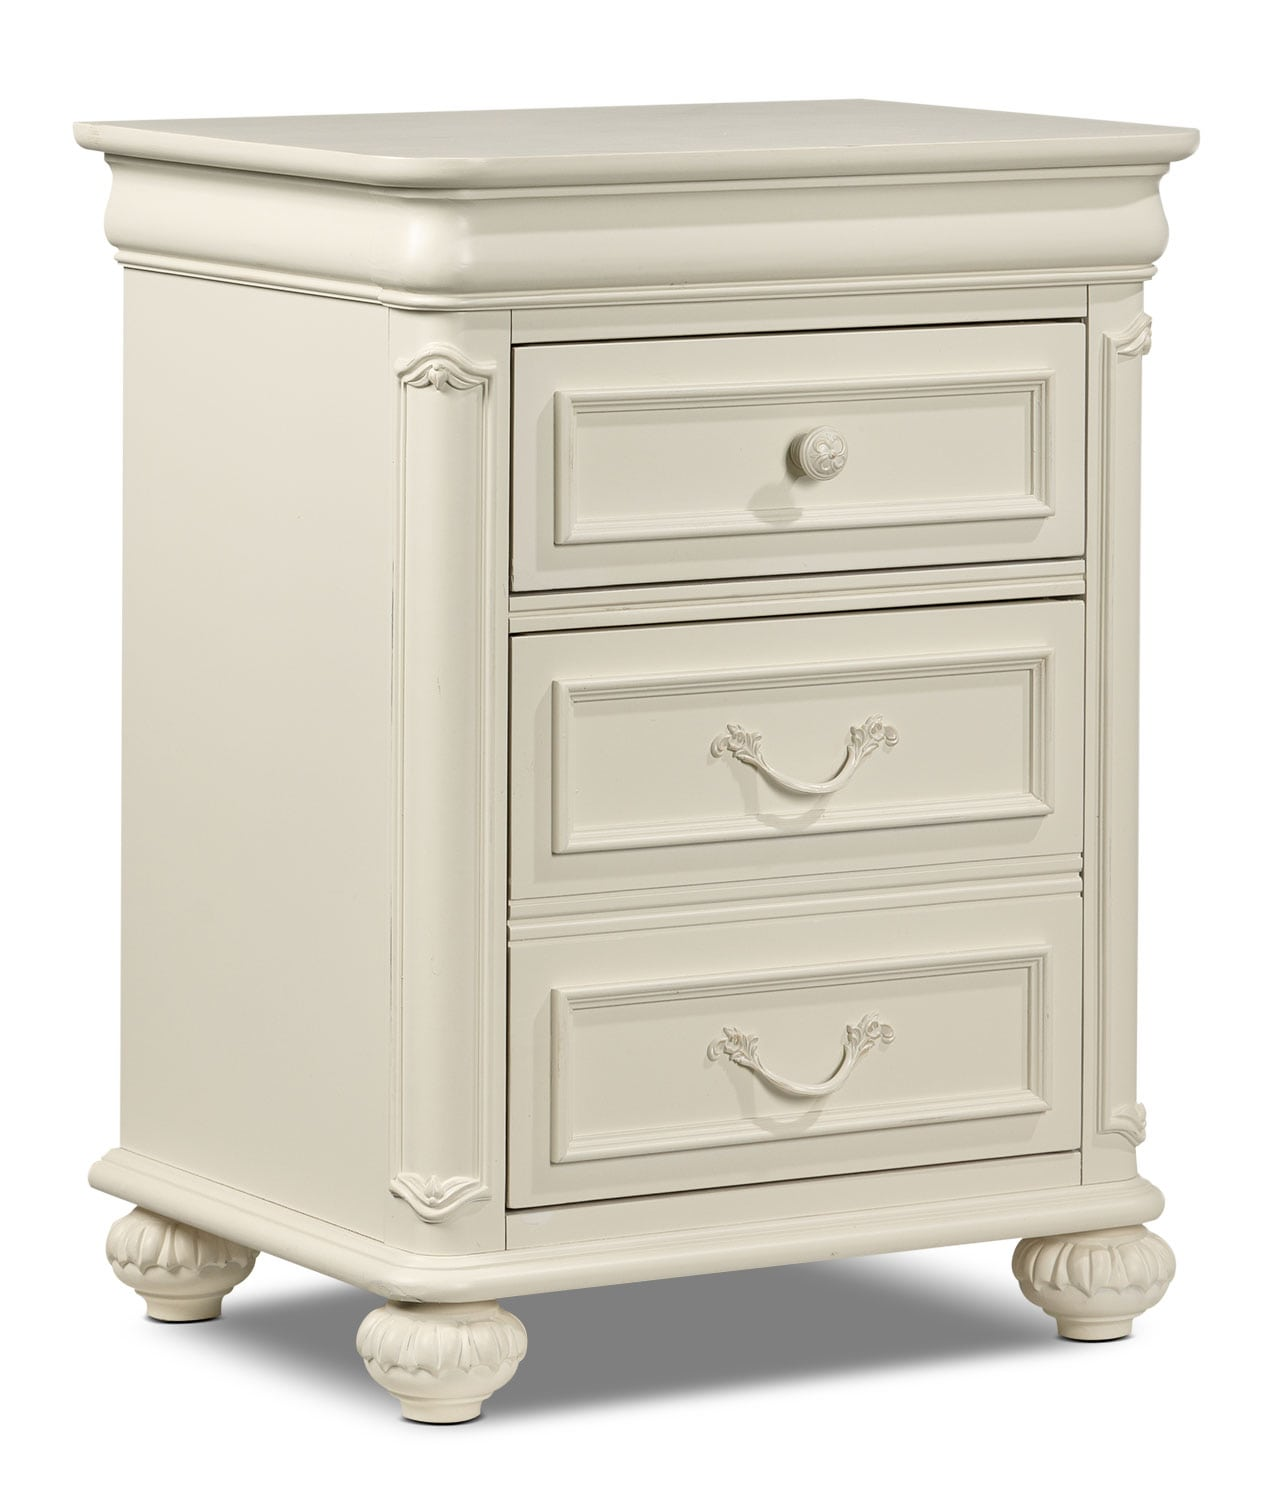 Bedroom Furniture - Amber Night Table - Antique White